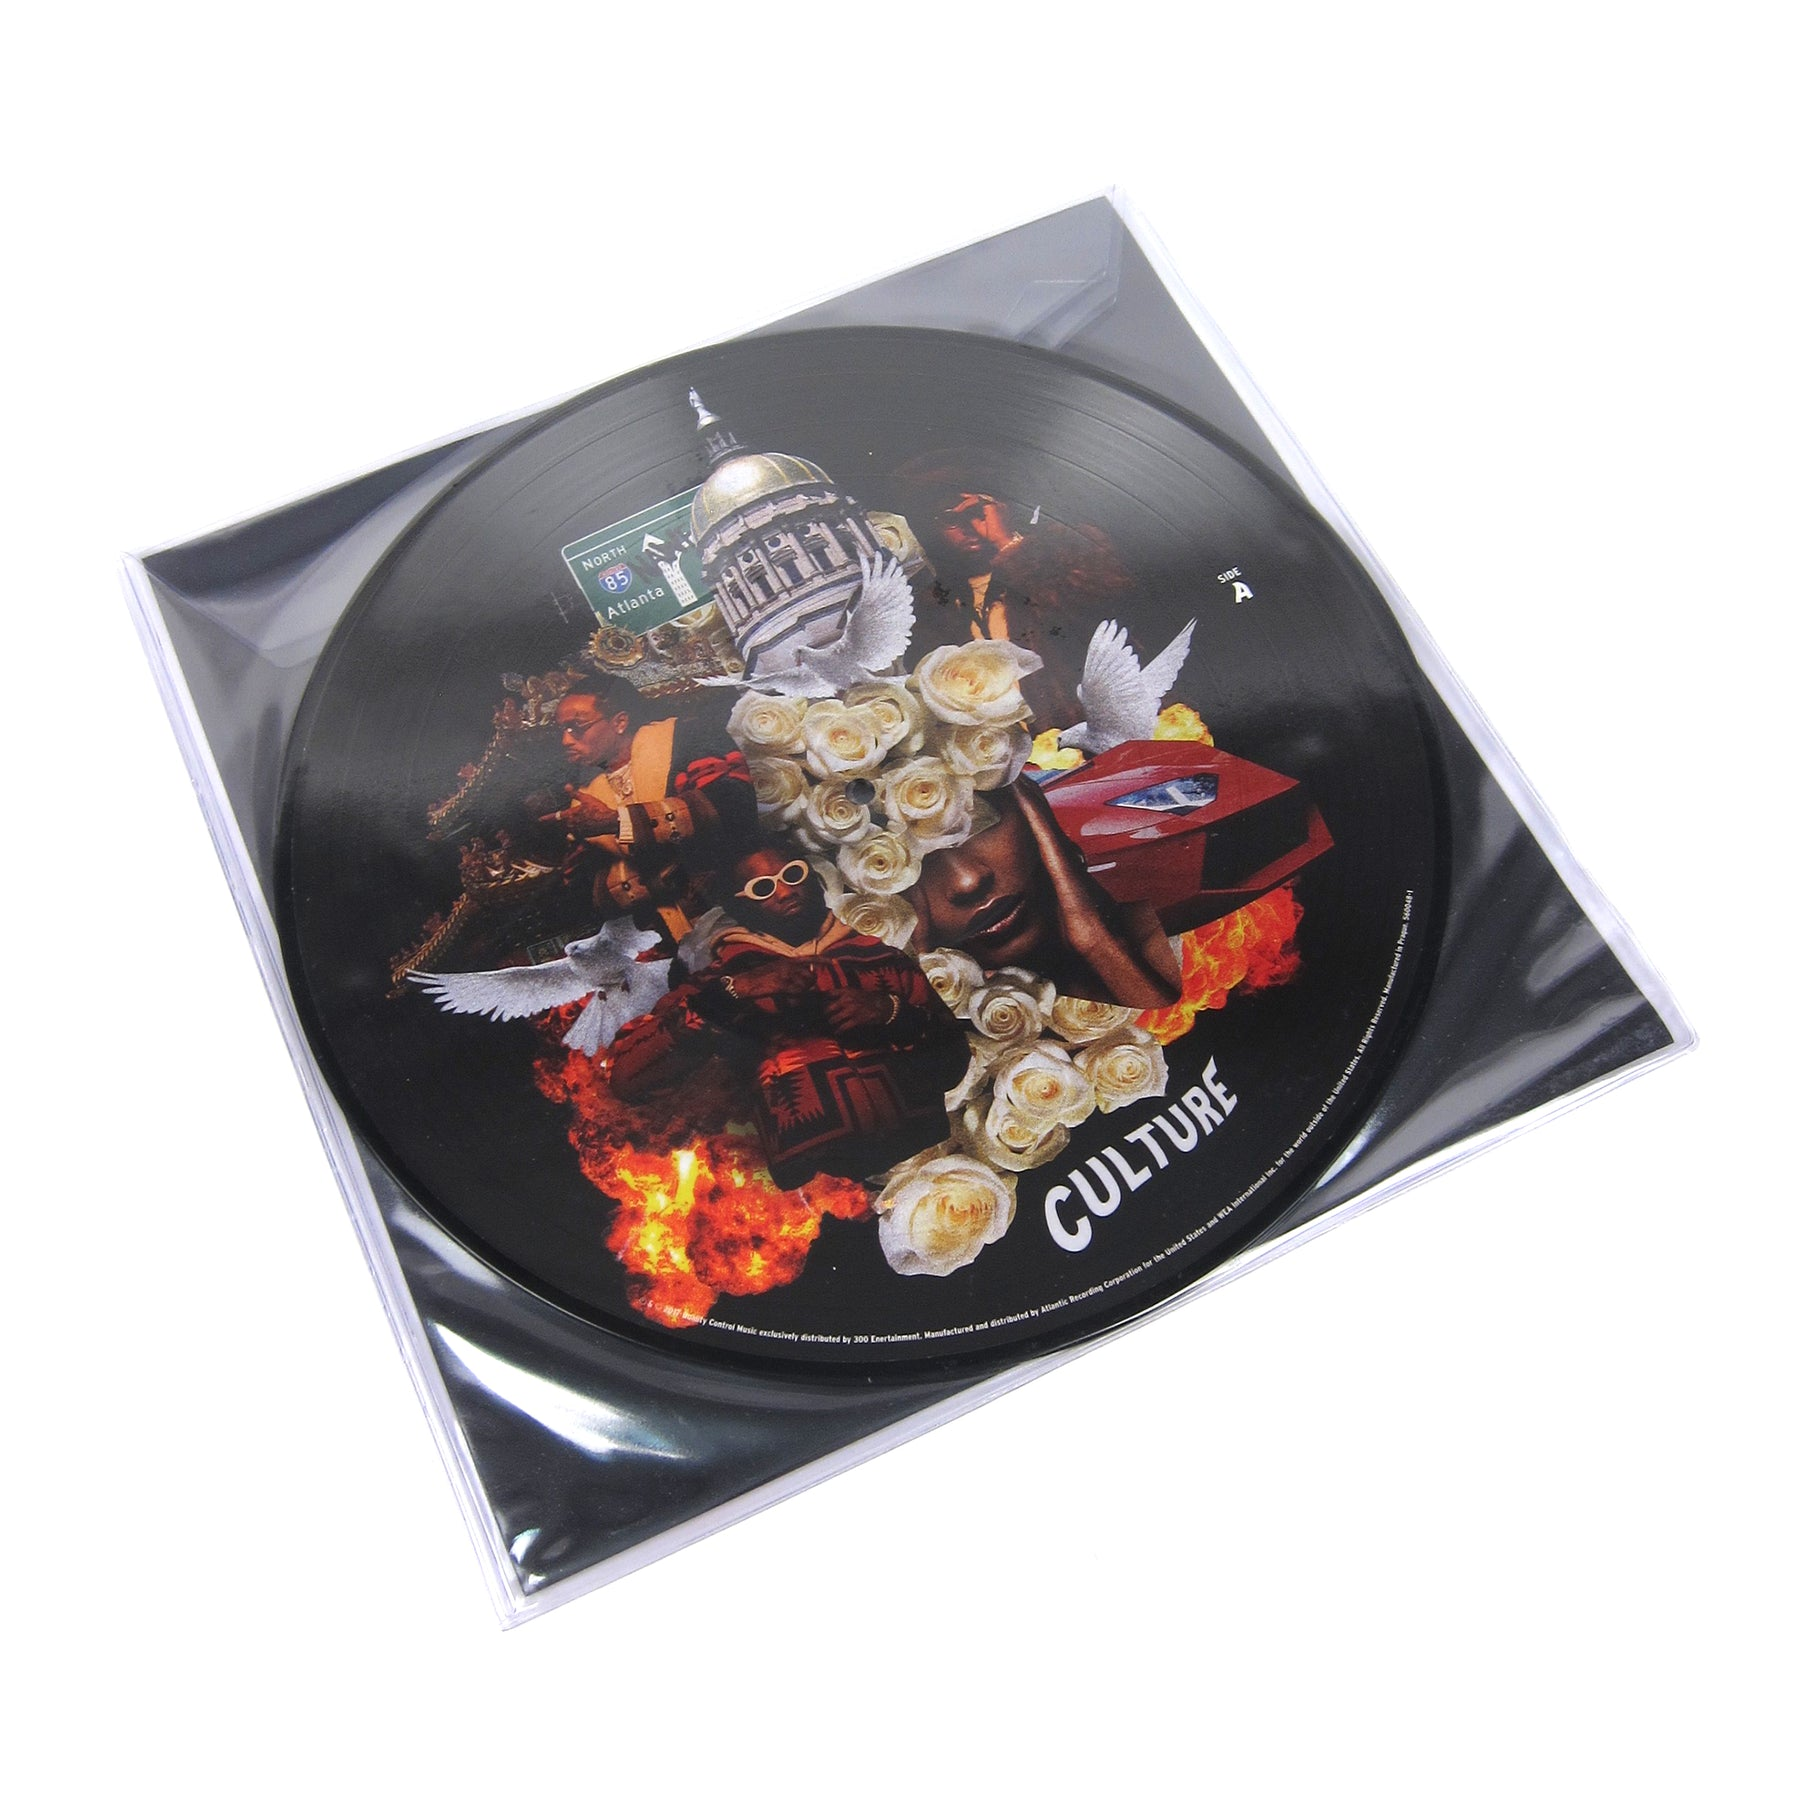 Migos Culture (Pic Disc) Vinyl 2LP